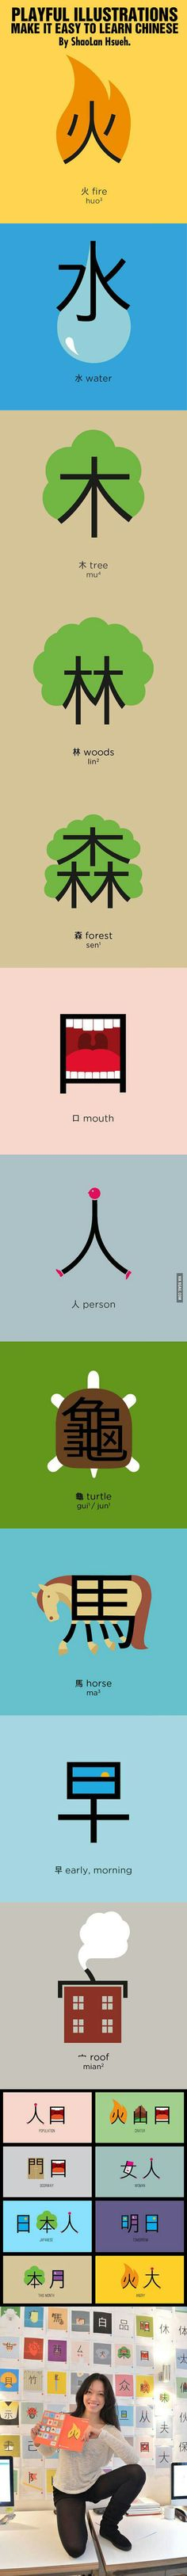 These illustrations make it easy to learn Chinese - 9GAG